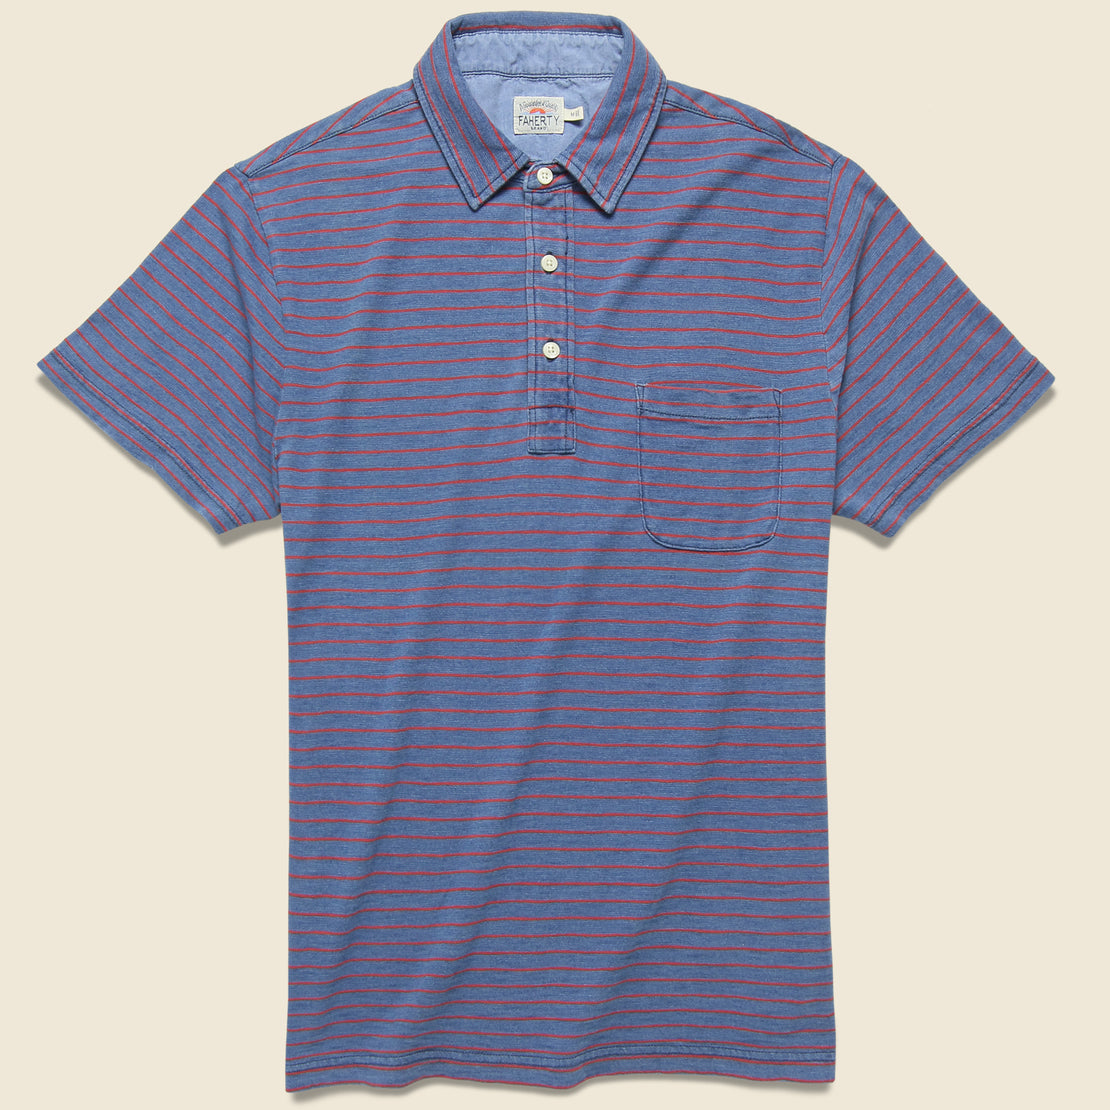 Faherty Faherty - S/S Indigo Jersey Beach Polo, SS19